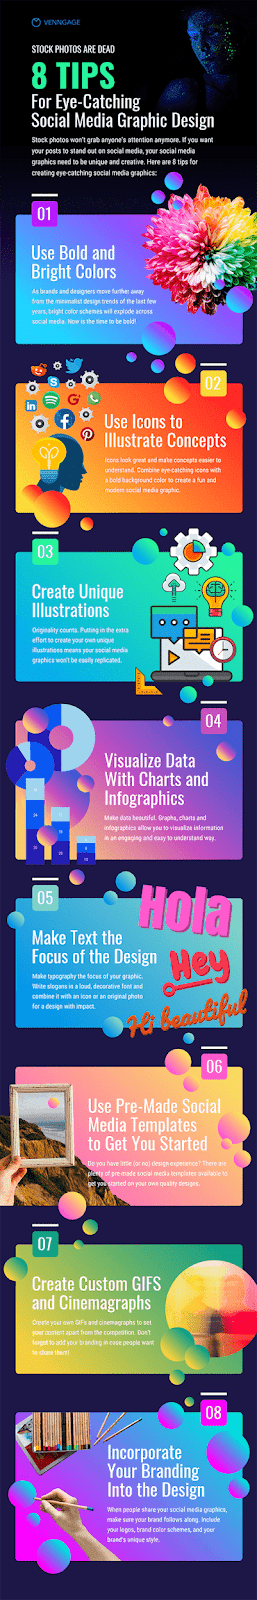 8 Tips for Eye-Catching Social Media Graphic Design